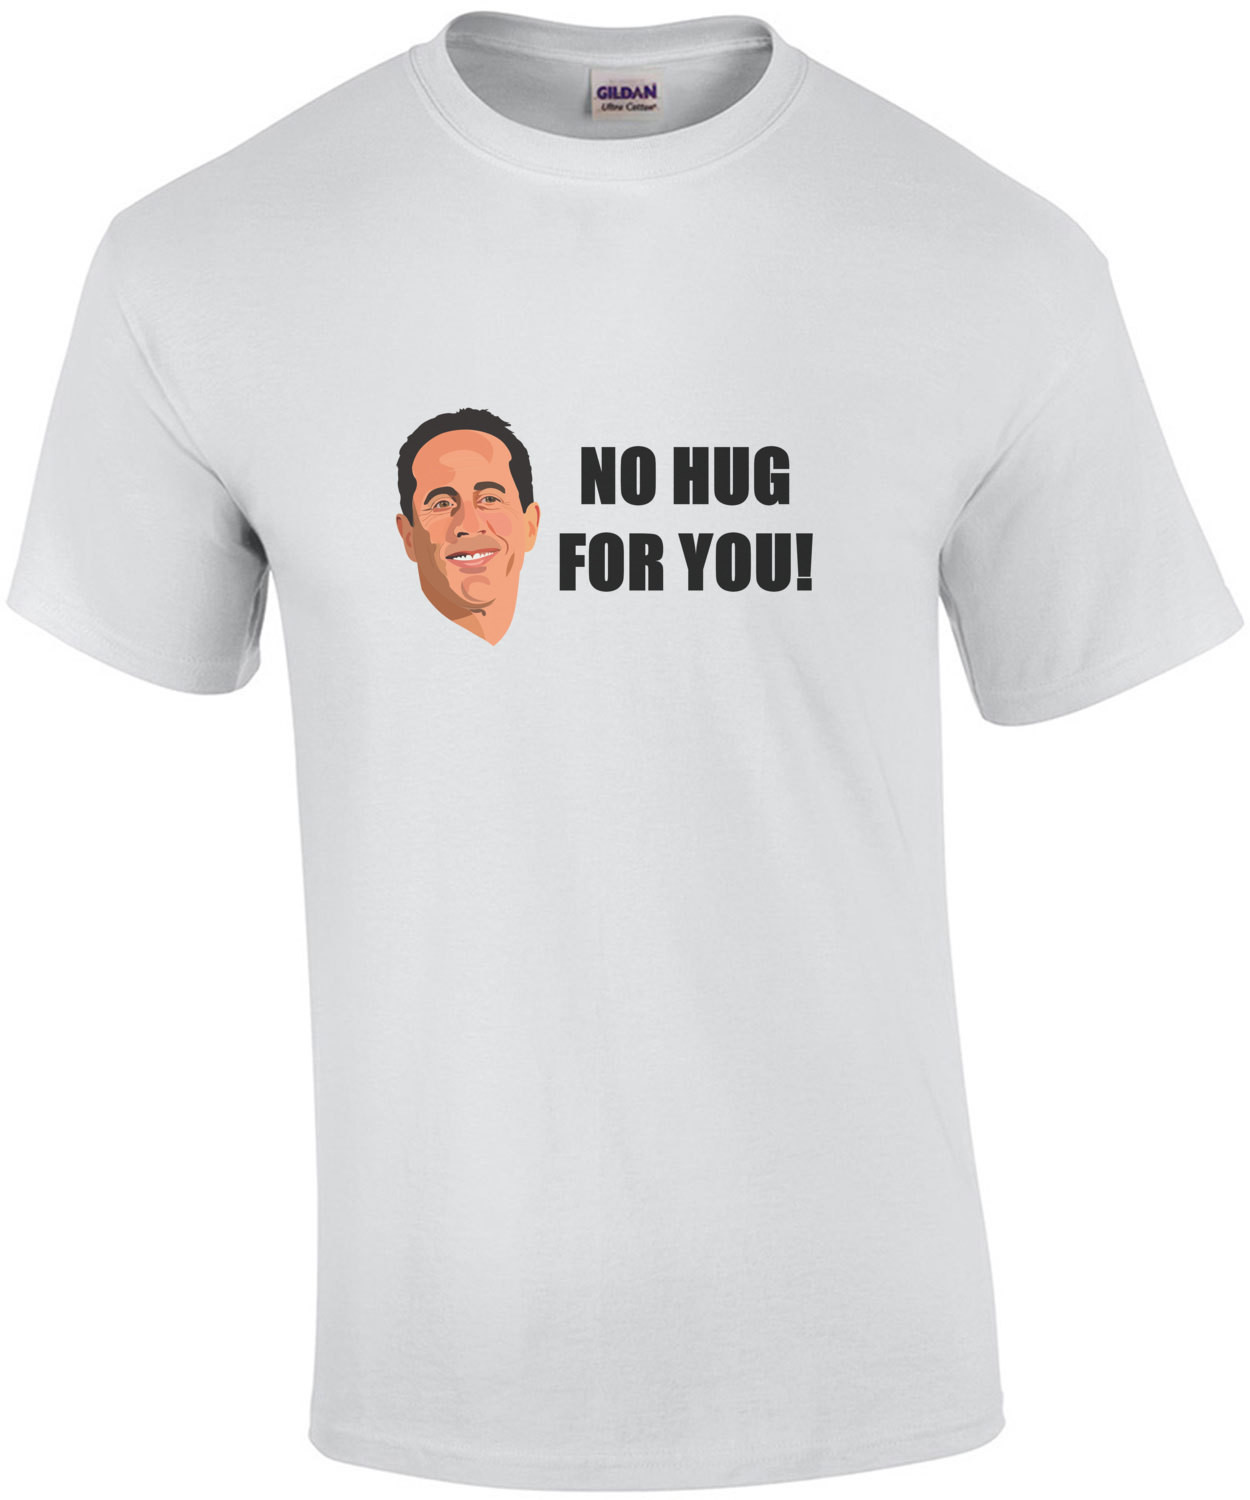 No Hug For You - Jerry Seinfeld - Kesha T-Shirt